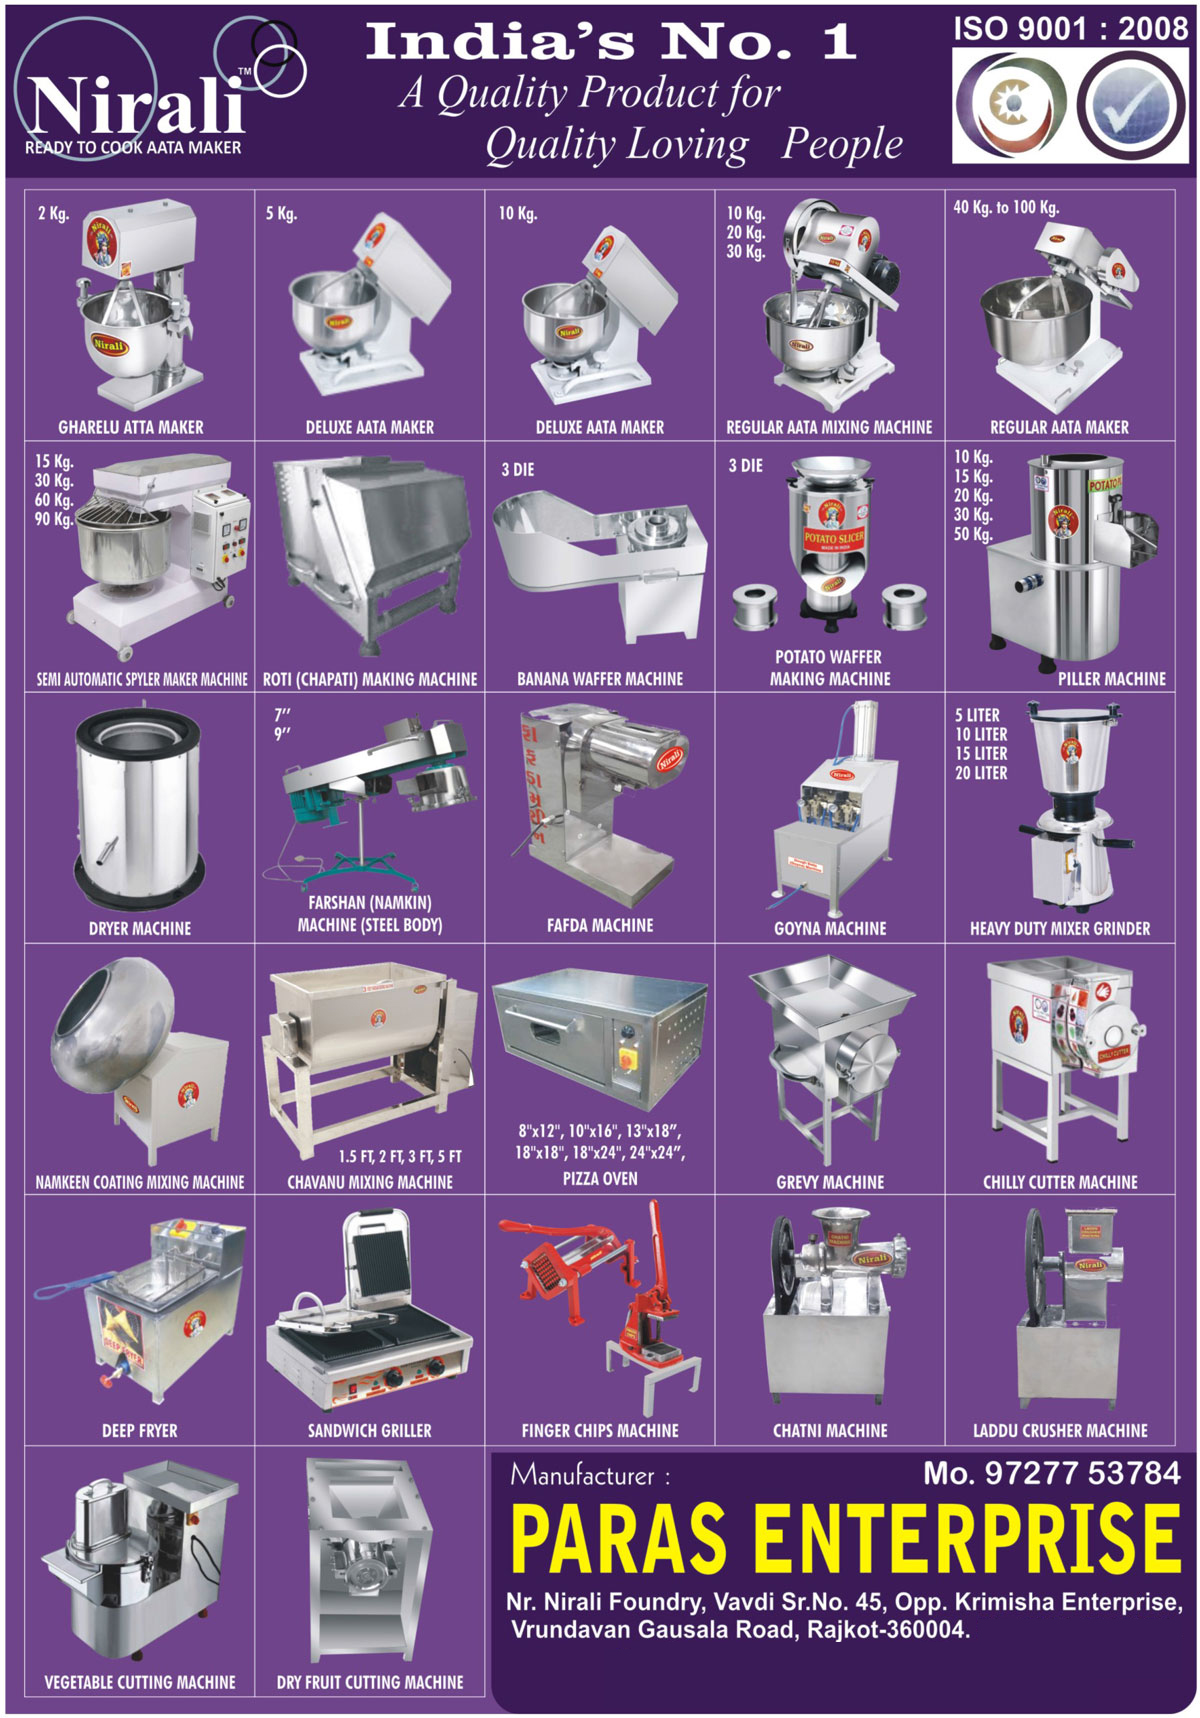 Dough Kneader, Atta Maker Machines, Chapati Machines, Wafer Machines, Chilly Cutter, Onion Cutting Machines, Atta Maker, Flour Maker, Flour Mixing Machines, Delux Atta Maker, Mixer Grinder, Chips Machines, Powder Machines, Grevy Machines, Gravy Machines, Banana Wafer Machines, Chavanu Mixing Machines, Chilly Cutting Machines, Onion Cutting Machines, Roti Making Machines, Induction Motors, Chopping Machines, Stainless Steel Farshan Machines, Vegetable Cutting Machines, Diesel Furnace Burners, Spylar Maker, Chapati Making Machines, Chilli Cutter, Chilli Cutting Machines, Stainless Steel Namkeen Machines, Dryer Machines, Potato Waffer Making Machines, Piller Machines, Wafers Machines, Spiral Maker, Chatni Machines, Finger Chips Machines, Laddu Crusher Machines, Ladoo Crusher Machines, Goyna Machine, Fafda Machine, Piller Machine, Atta Mixing Machine, Spyler Maker Machines, Namkeen Coating Mixing Machines, Pizza Ovens, Deep Fryer, Sandwich Grillers, Dry Fruit Cutting Machines